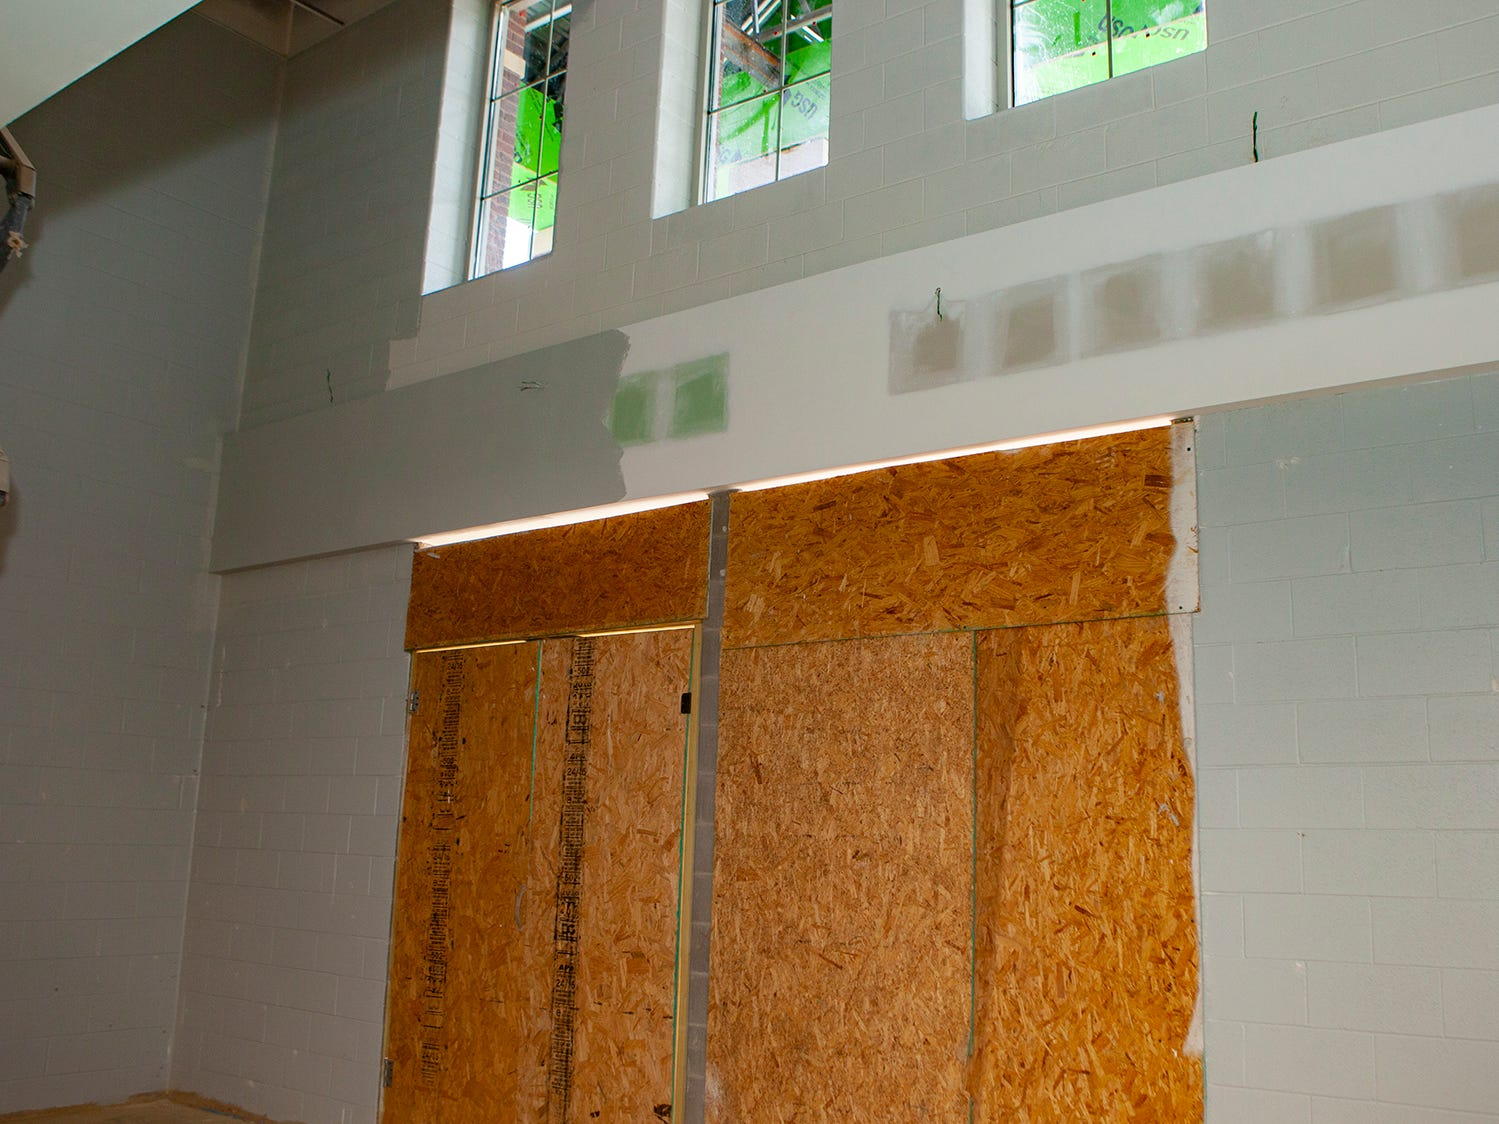 The front door of Salem Elementary, Murfreesboro City Schools' 13th campus, is still boarded. The school will open in July 2019.